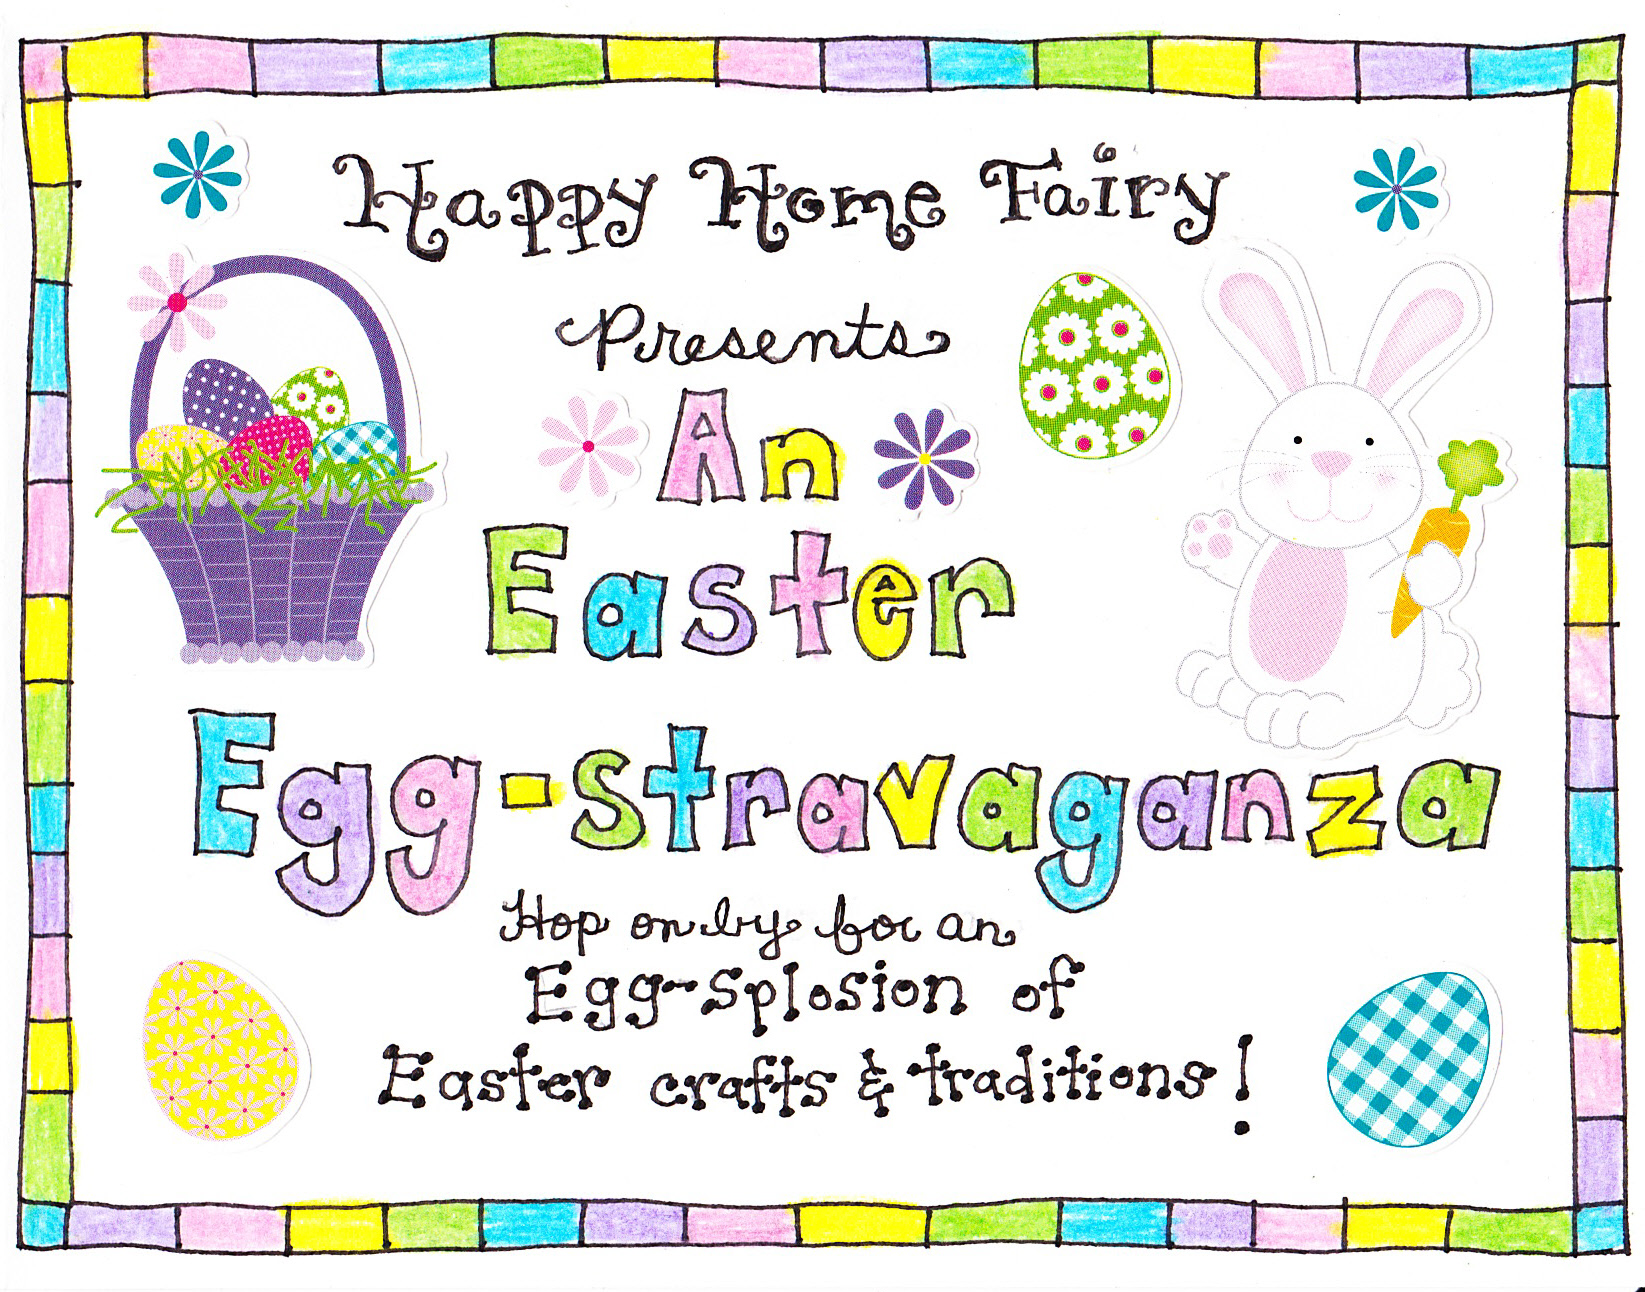 image relating to Printable Easter Egg Hunt Clues titled Easter Early morning Scavenger Hunt - Cost-free Printable! - Content